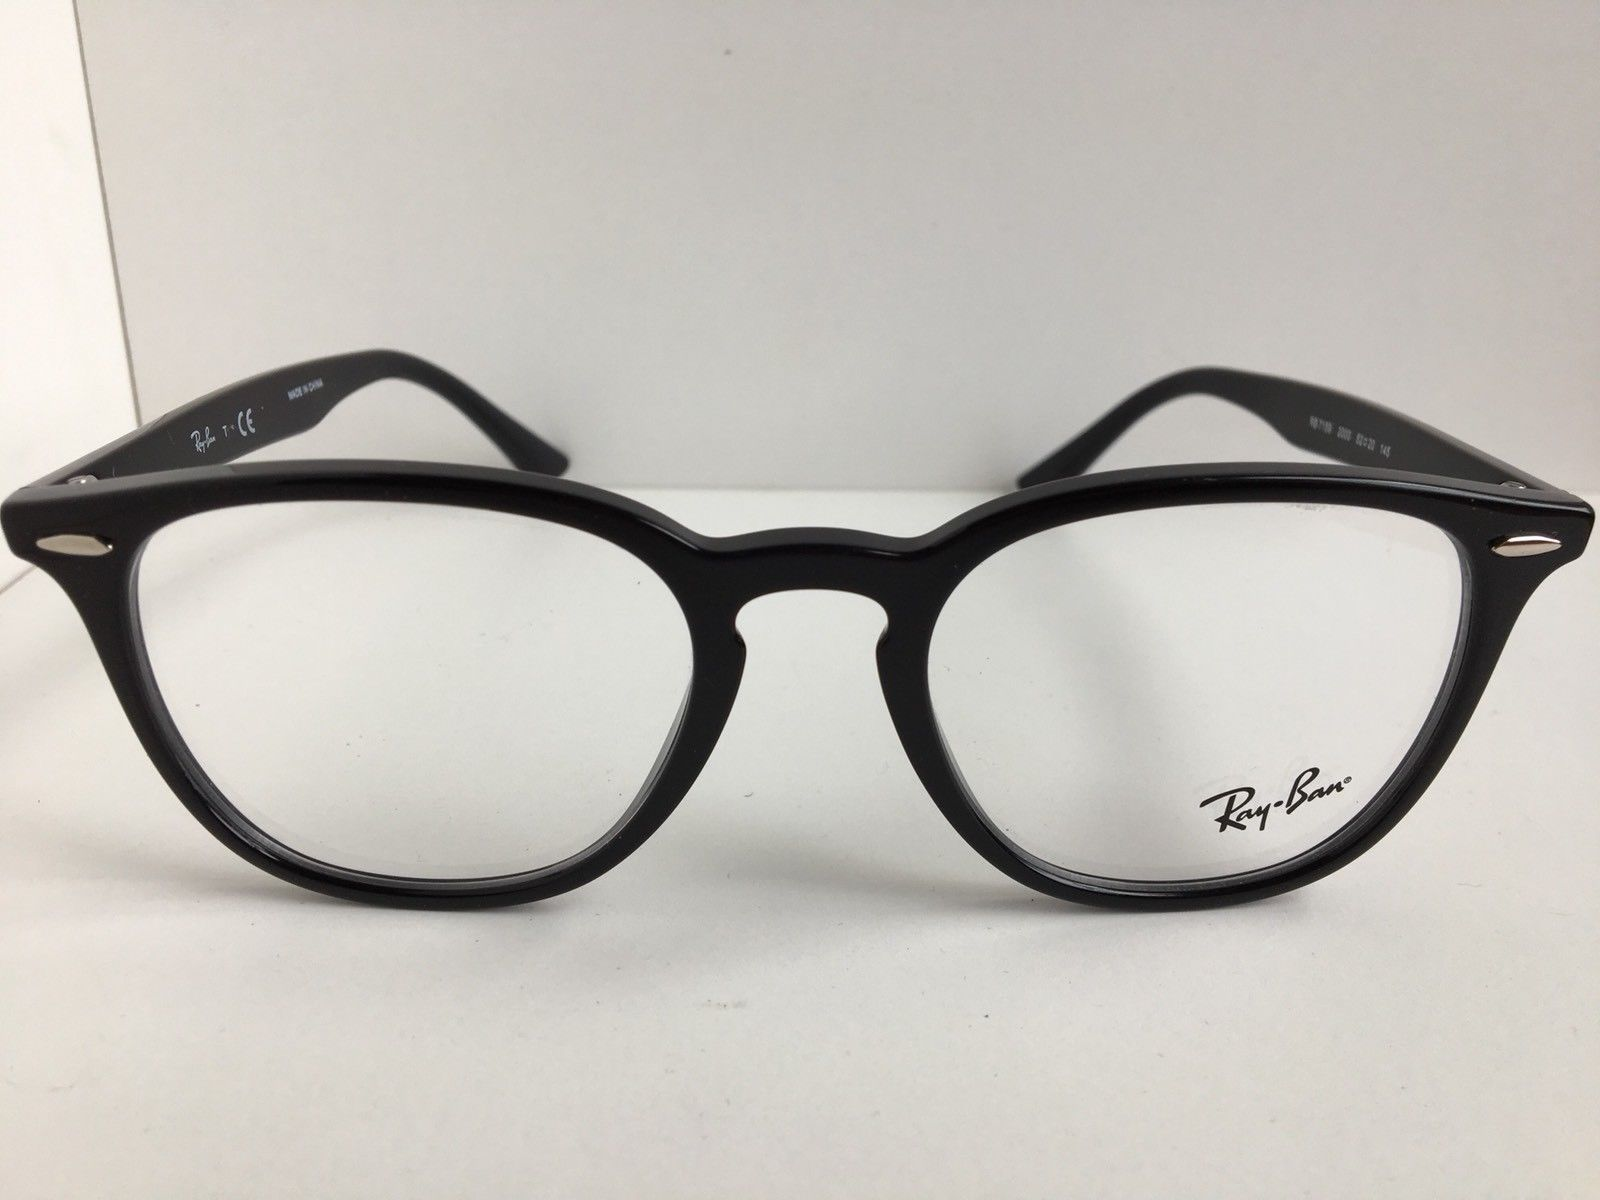 5b5f2abada New Ray-Ban RB 7159 2000 52mm Black Round and 9 similar items